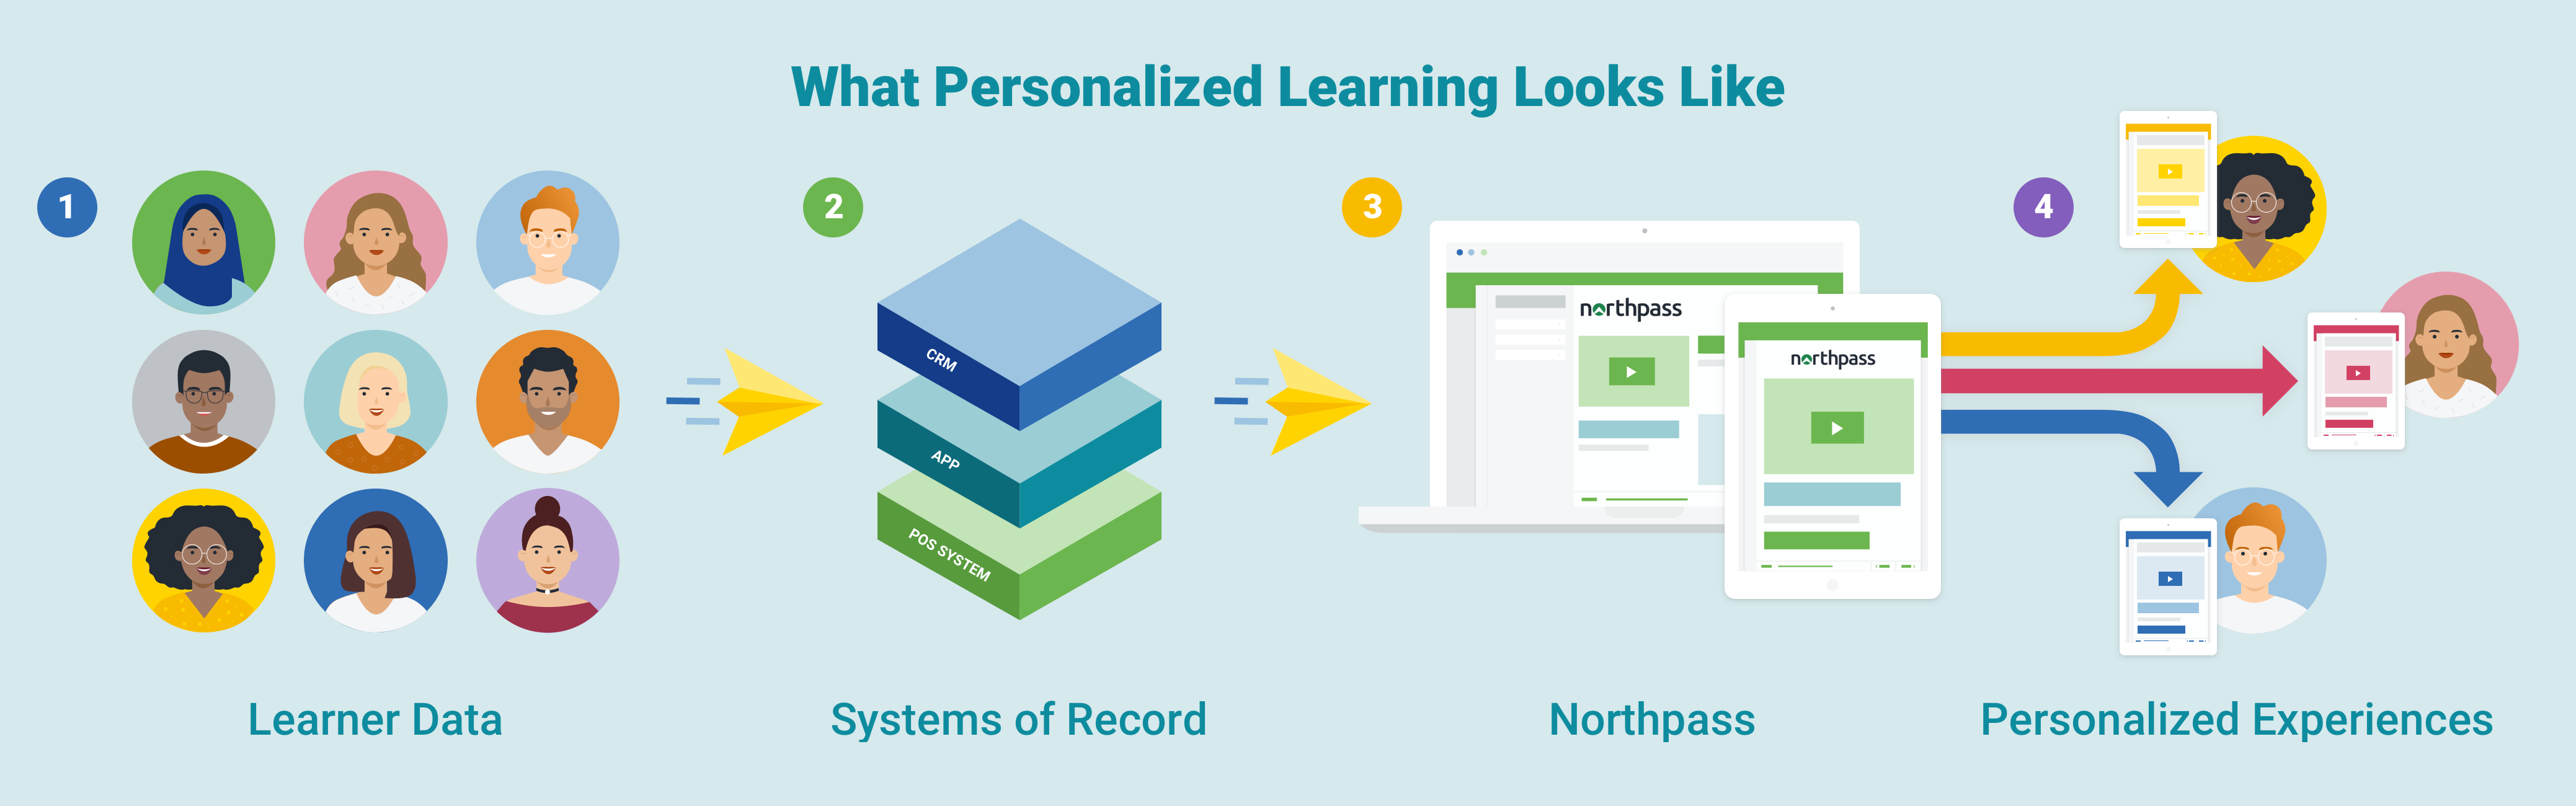 Northpass Properties Illustration | What Personalized Learning Looks Like